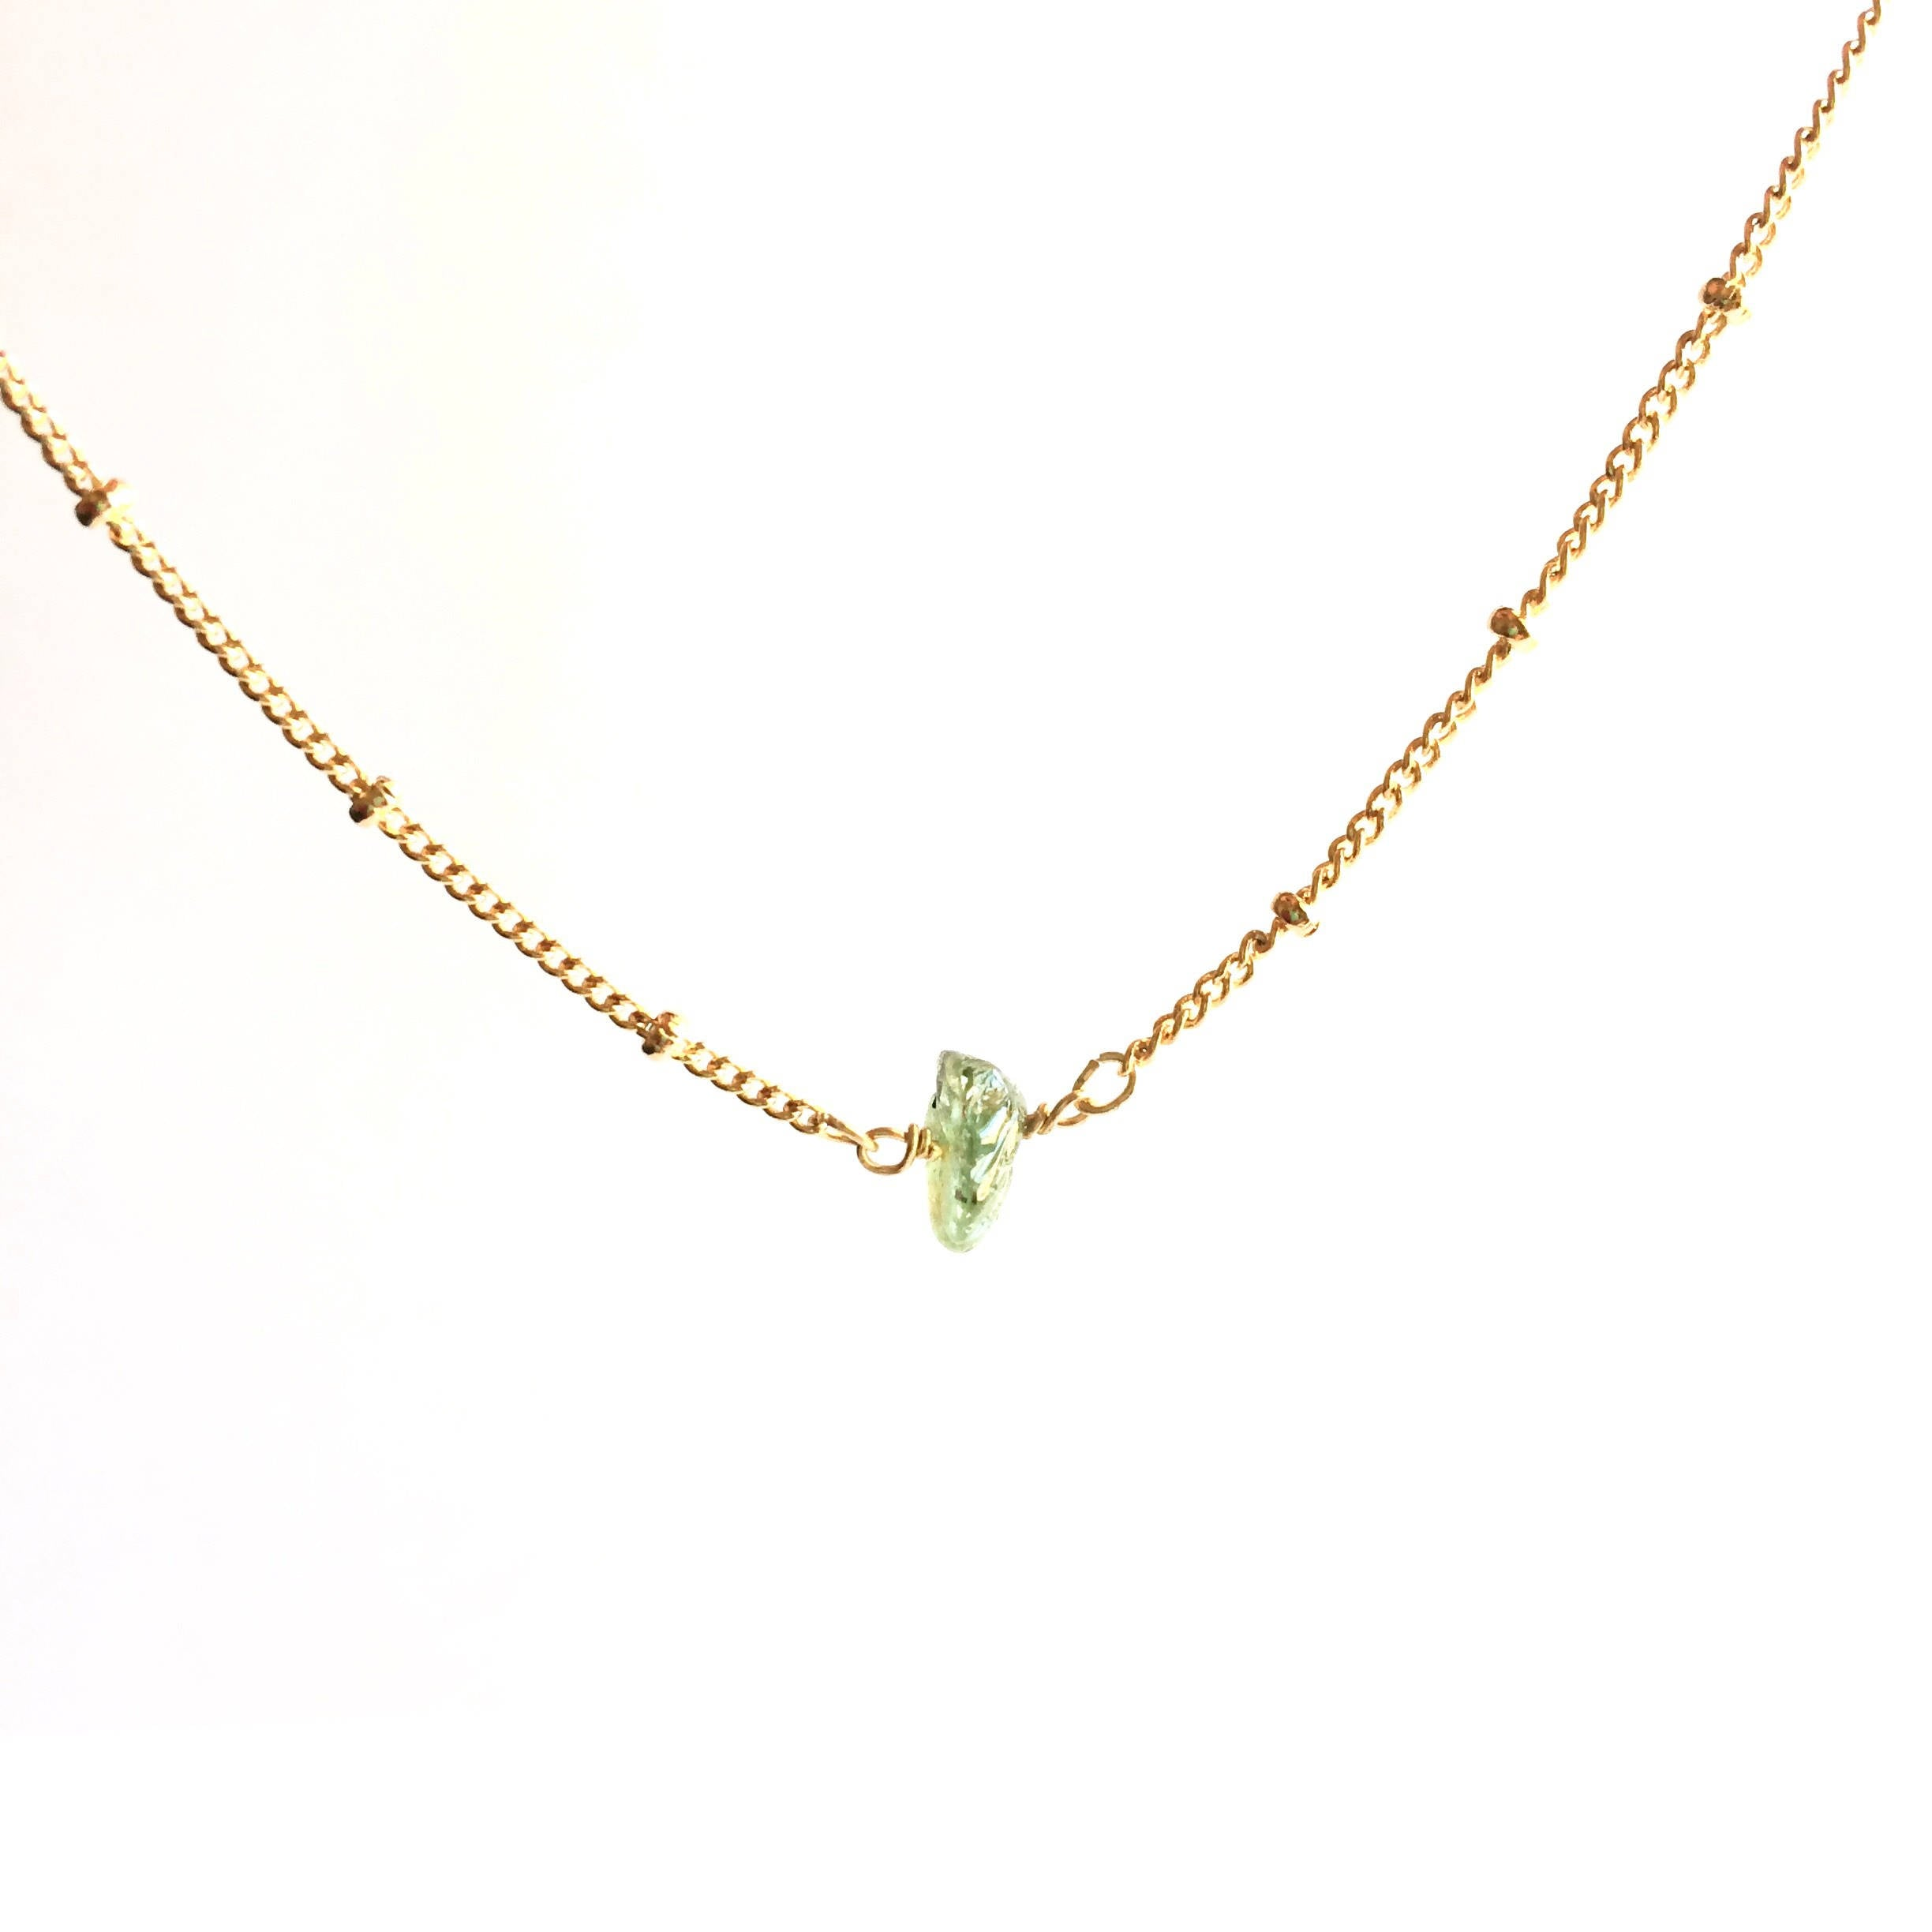 Simple Tiny Raw Emerald Satellite Chain Necklace | IB Jewelry